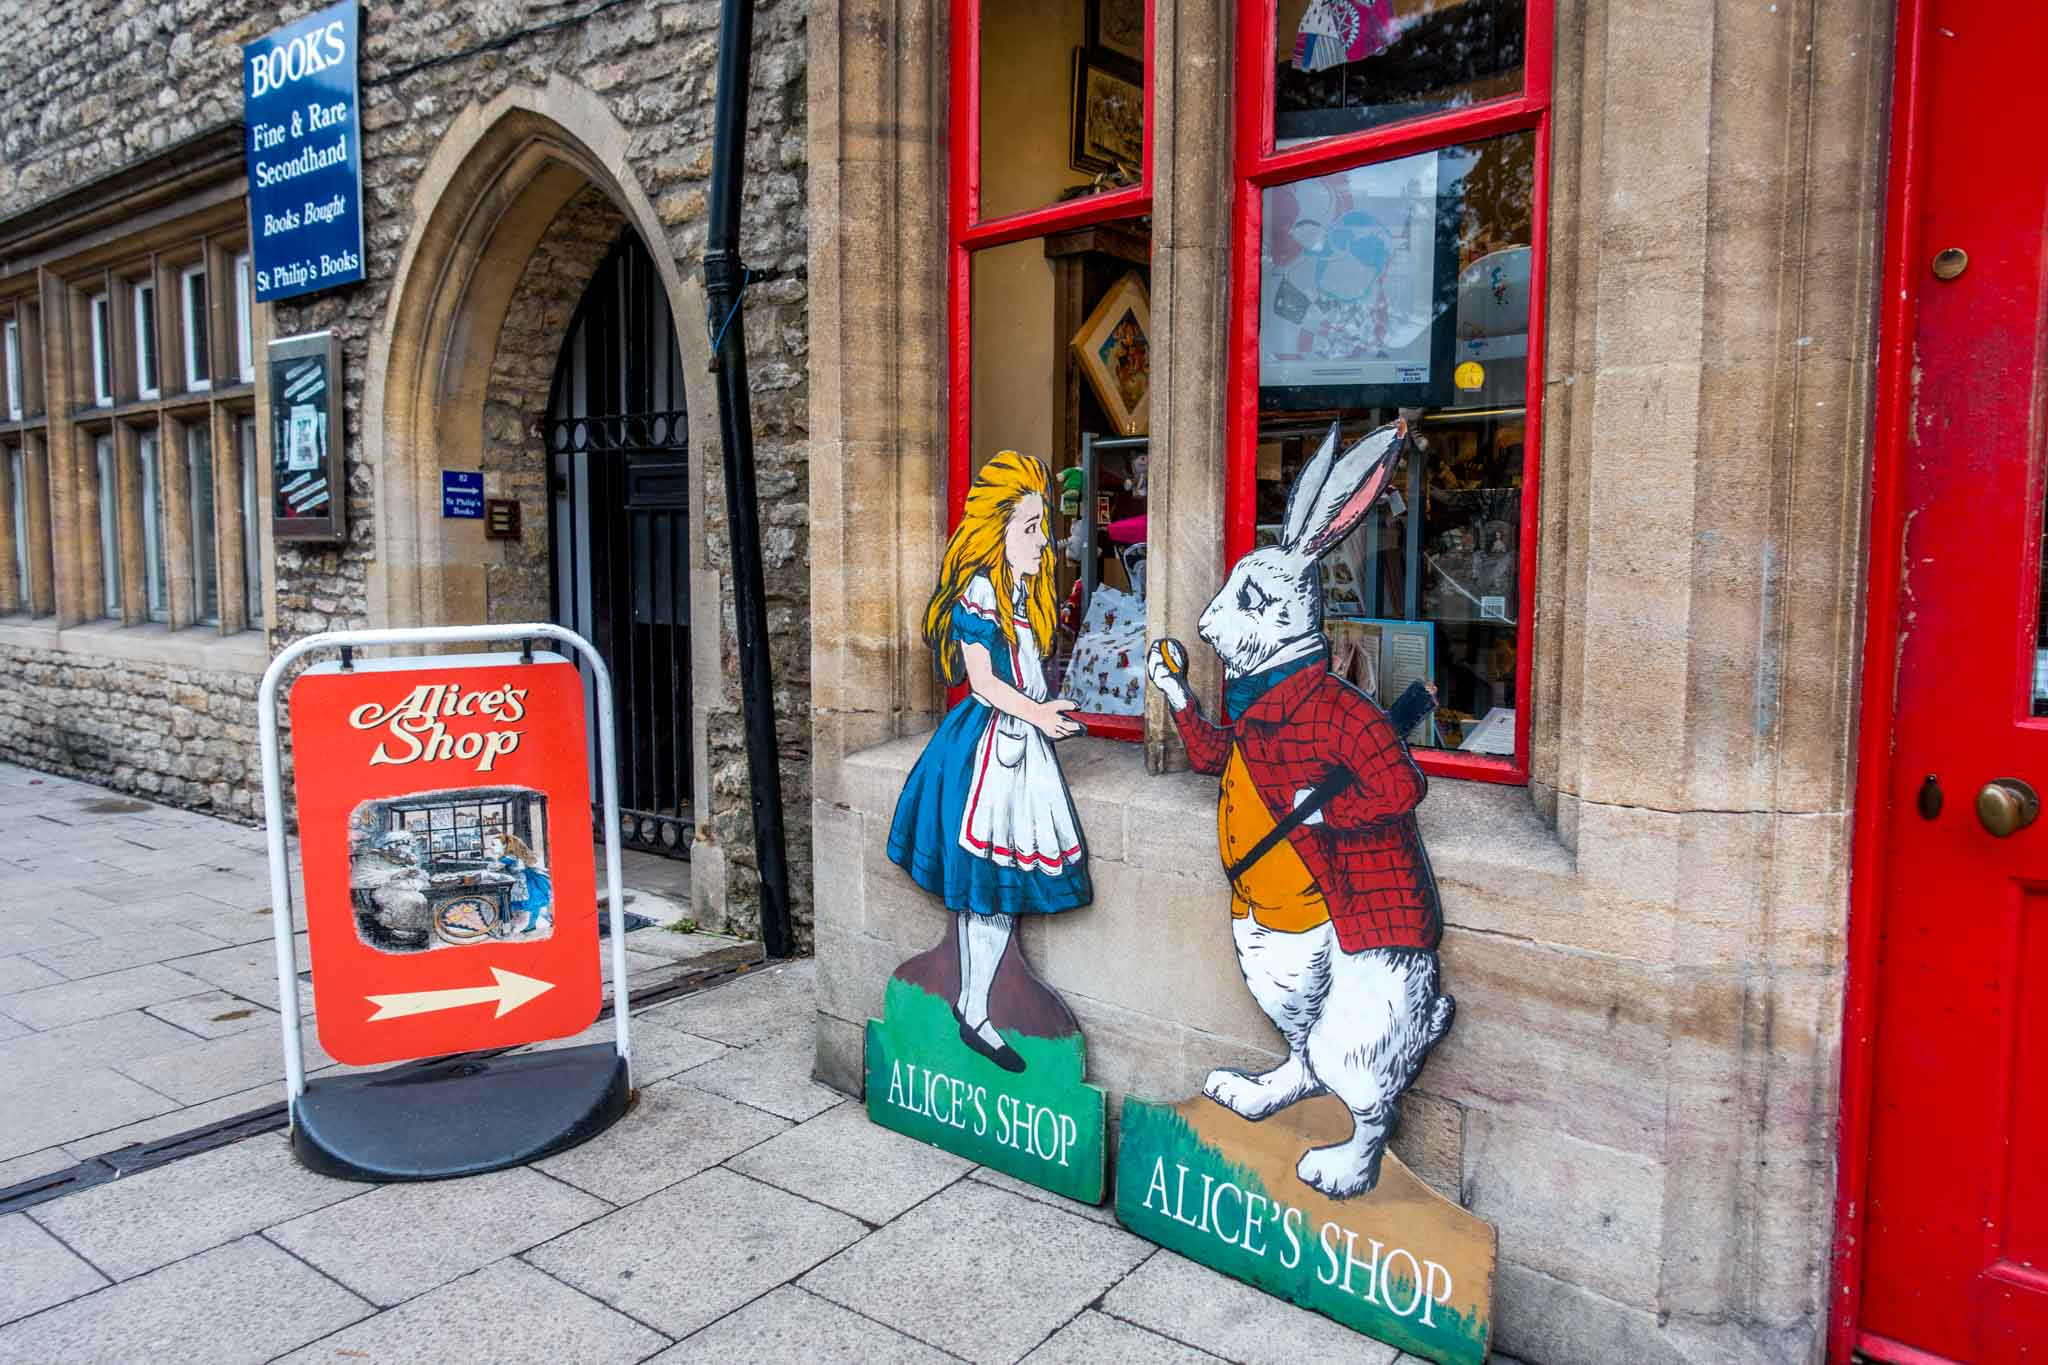 Signs and exterior of the Alice Shop, inspired by Alice in Wonderland